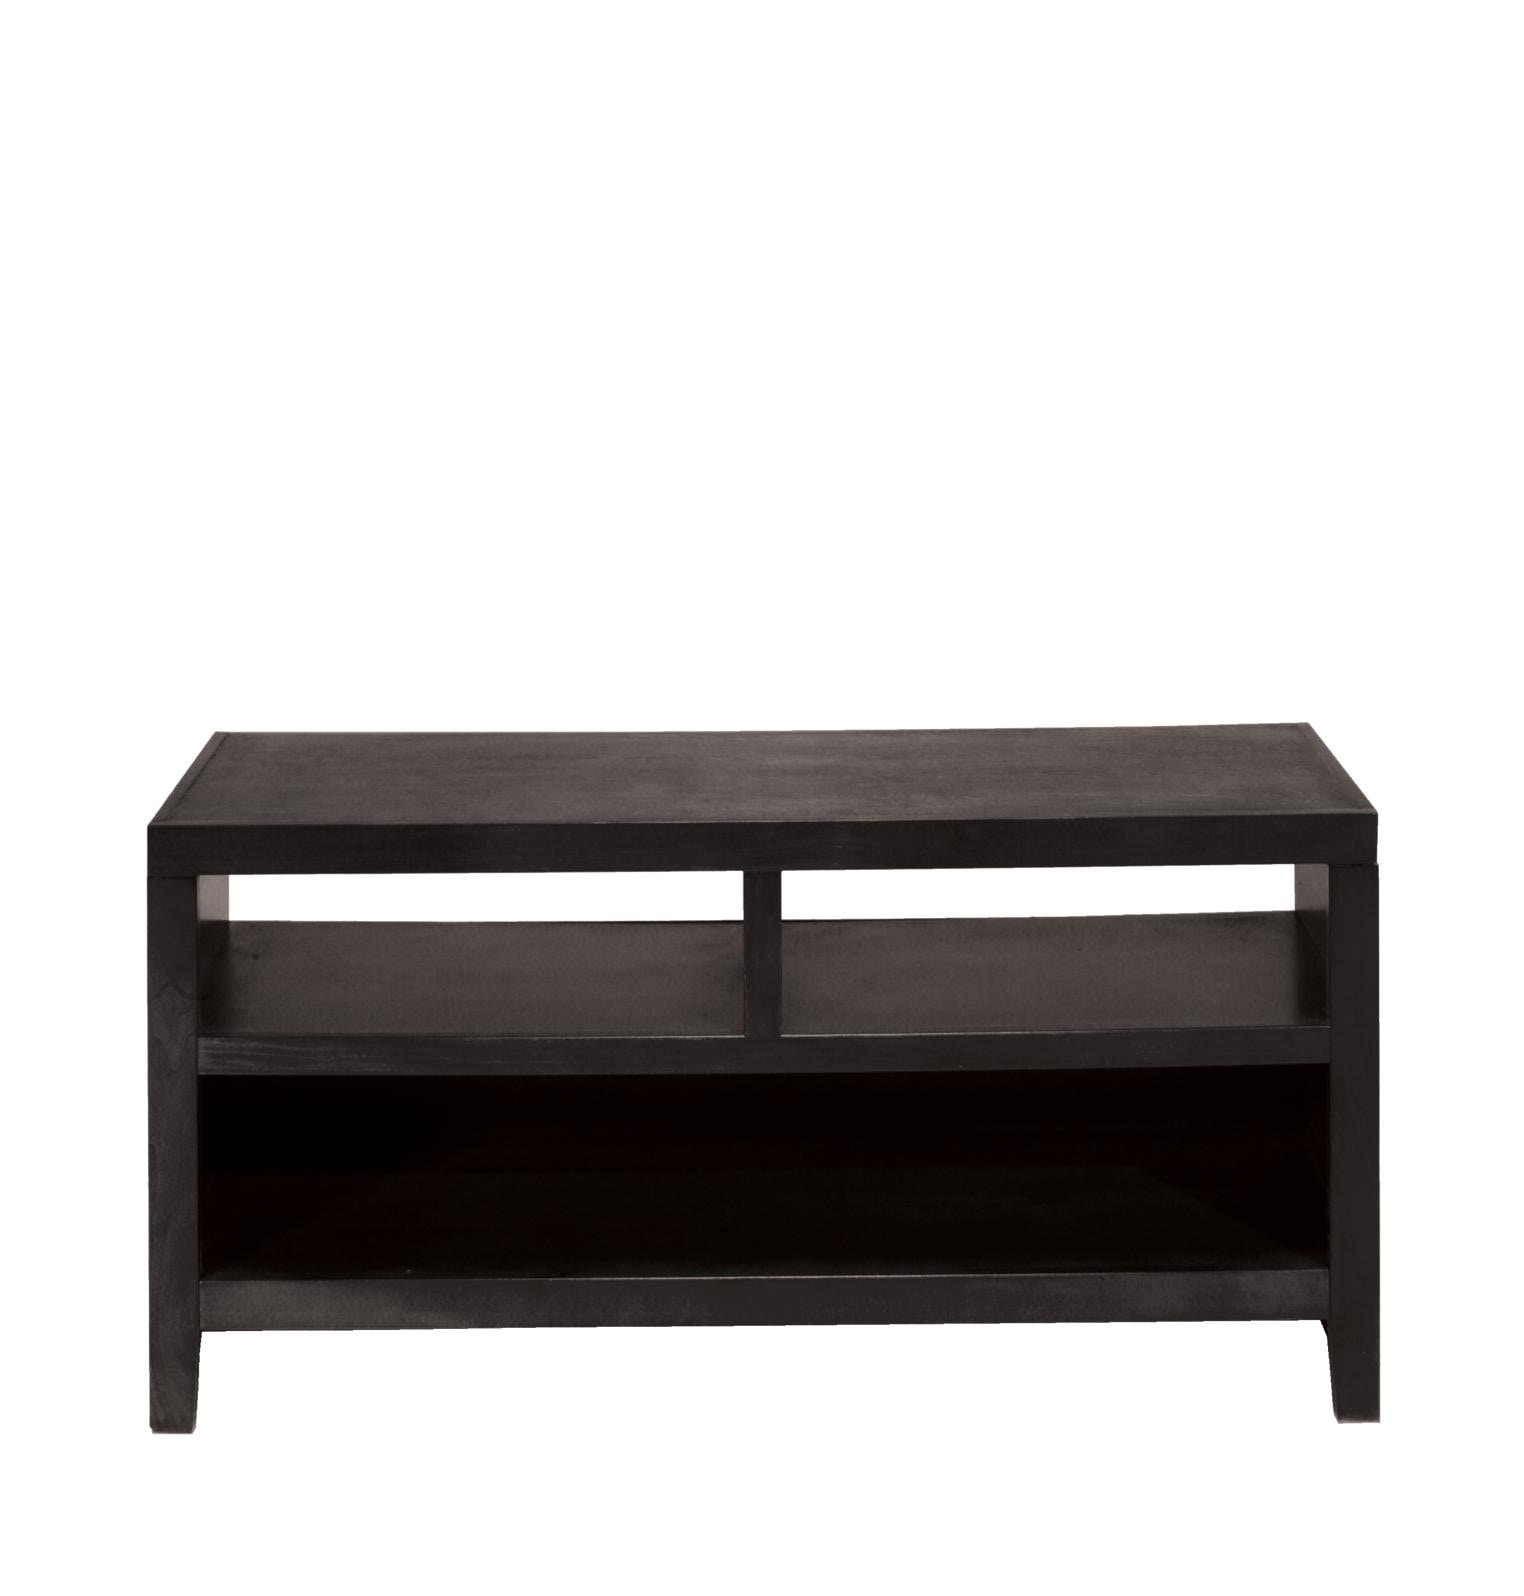 Aspenhome Furniture Essentials Lifestyle   Cherry 49 Console CL1012 BLK